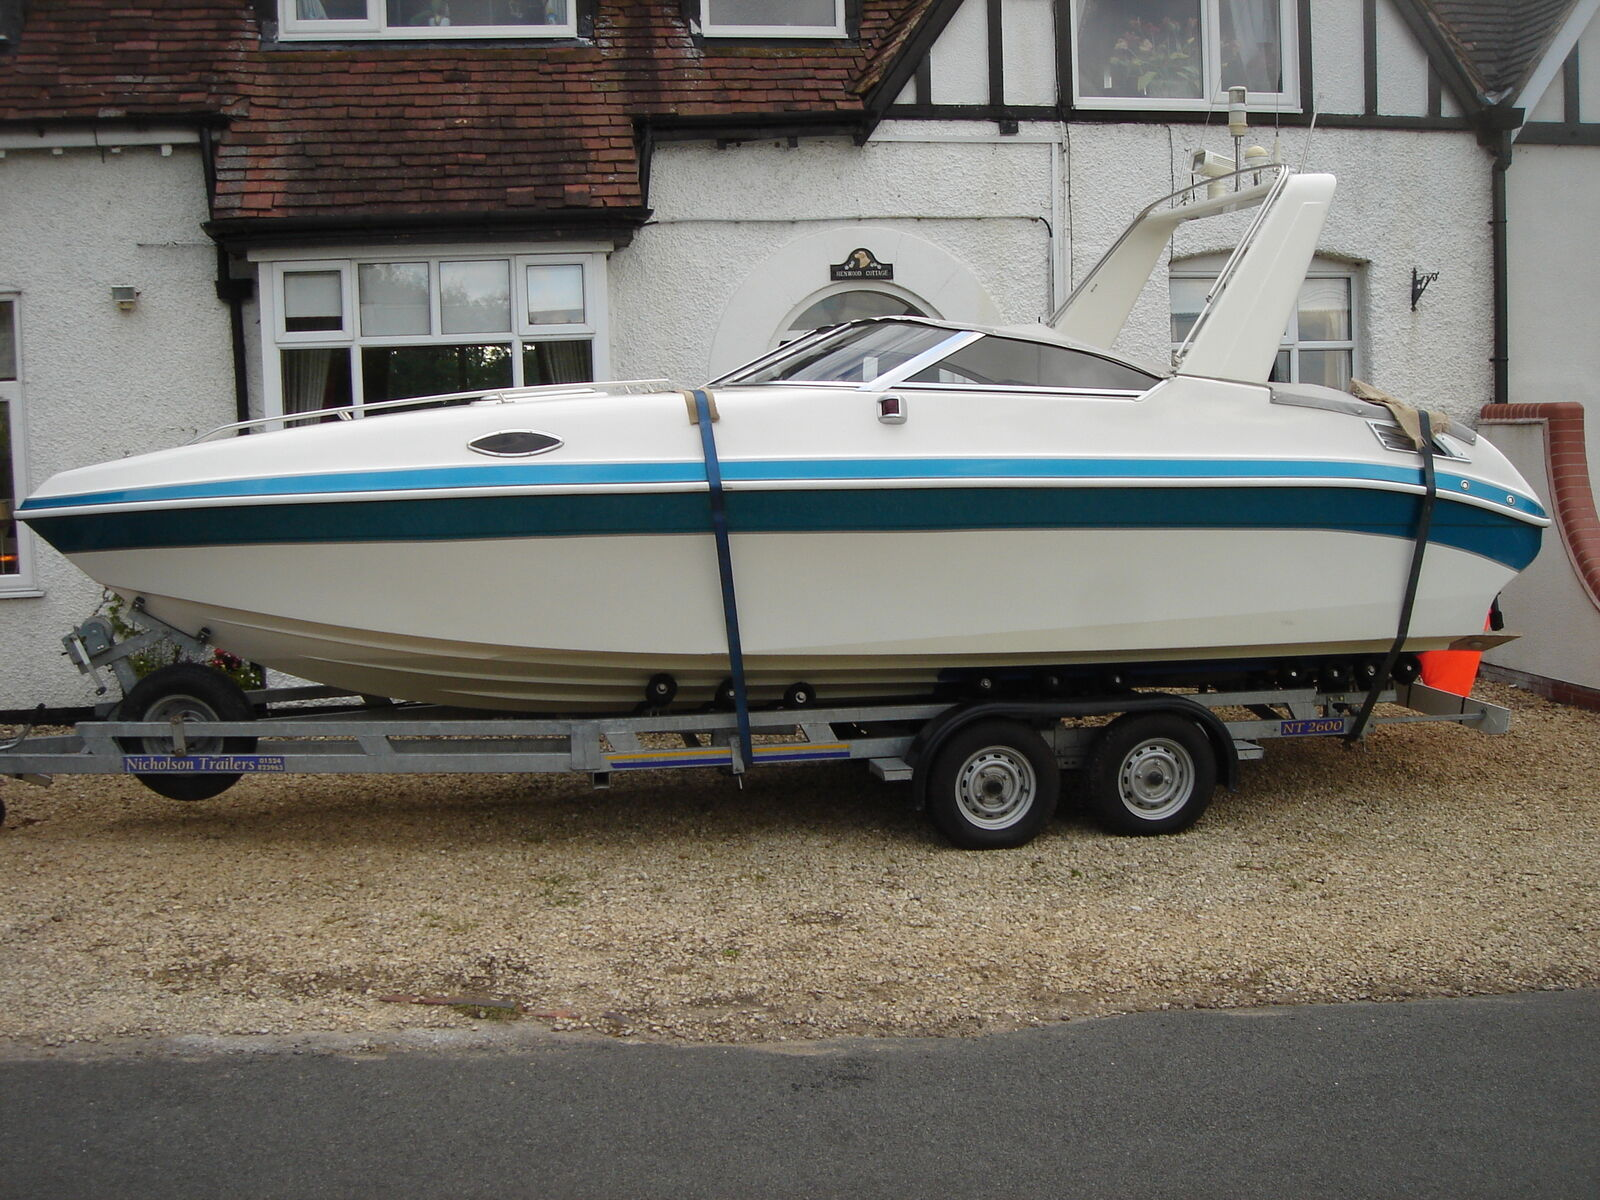 Aquatron 2350sc Offshore Power Speed Boat Mercruiser 74ltr Bayliner Capri Volvo Penta Fuel Filter Location 1 Of 12 See More